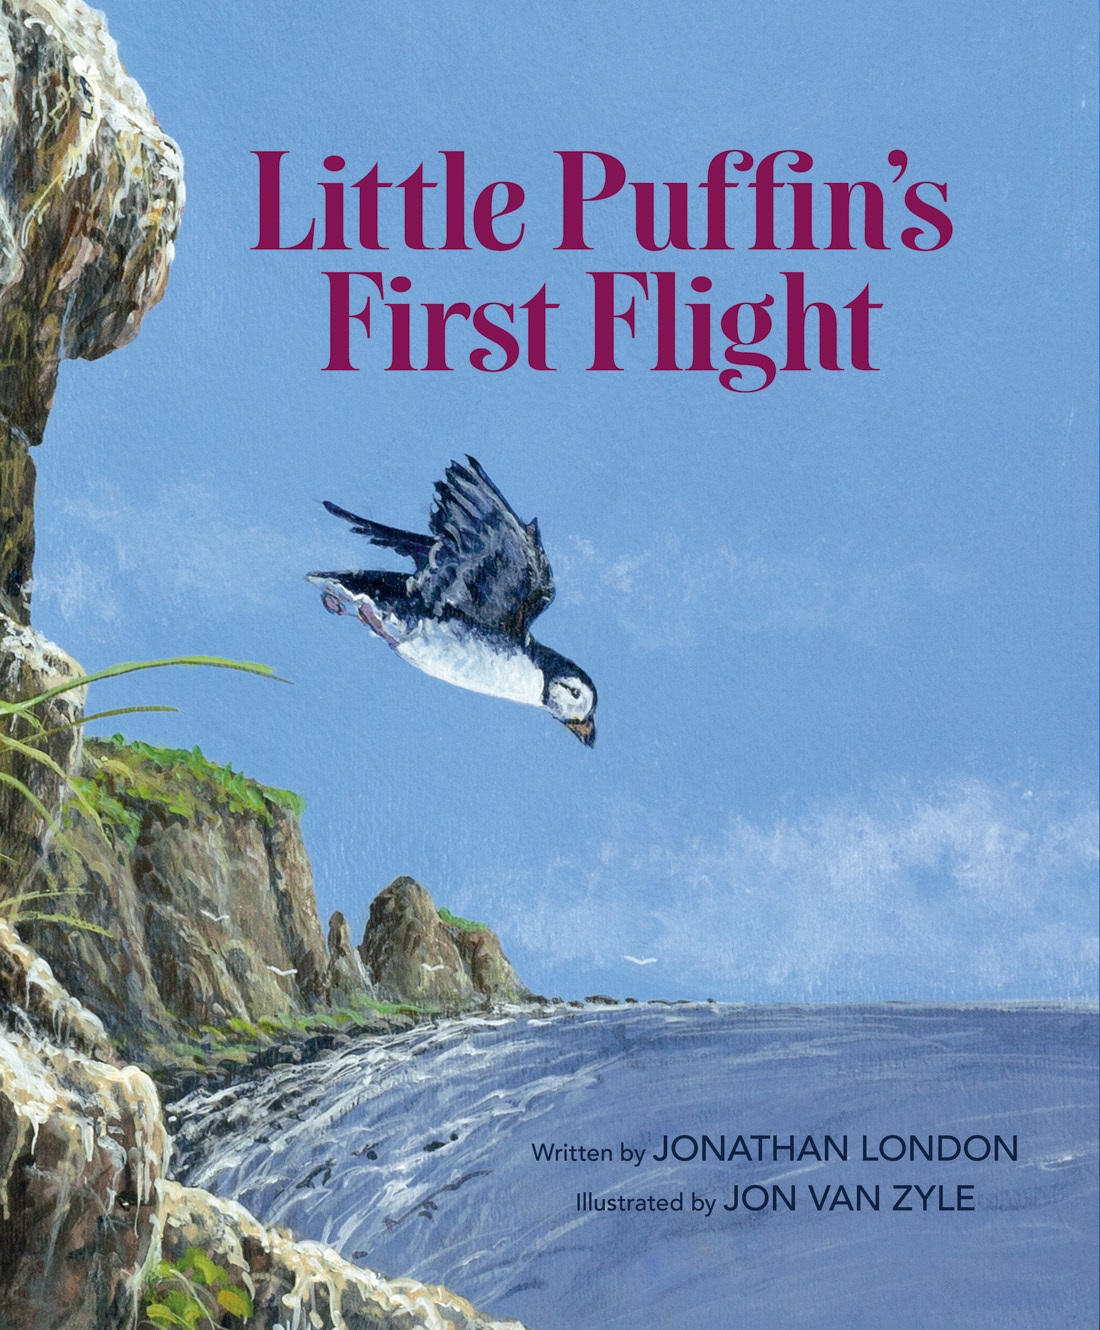 Little Puffin's First Flight